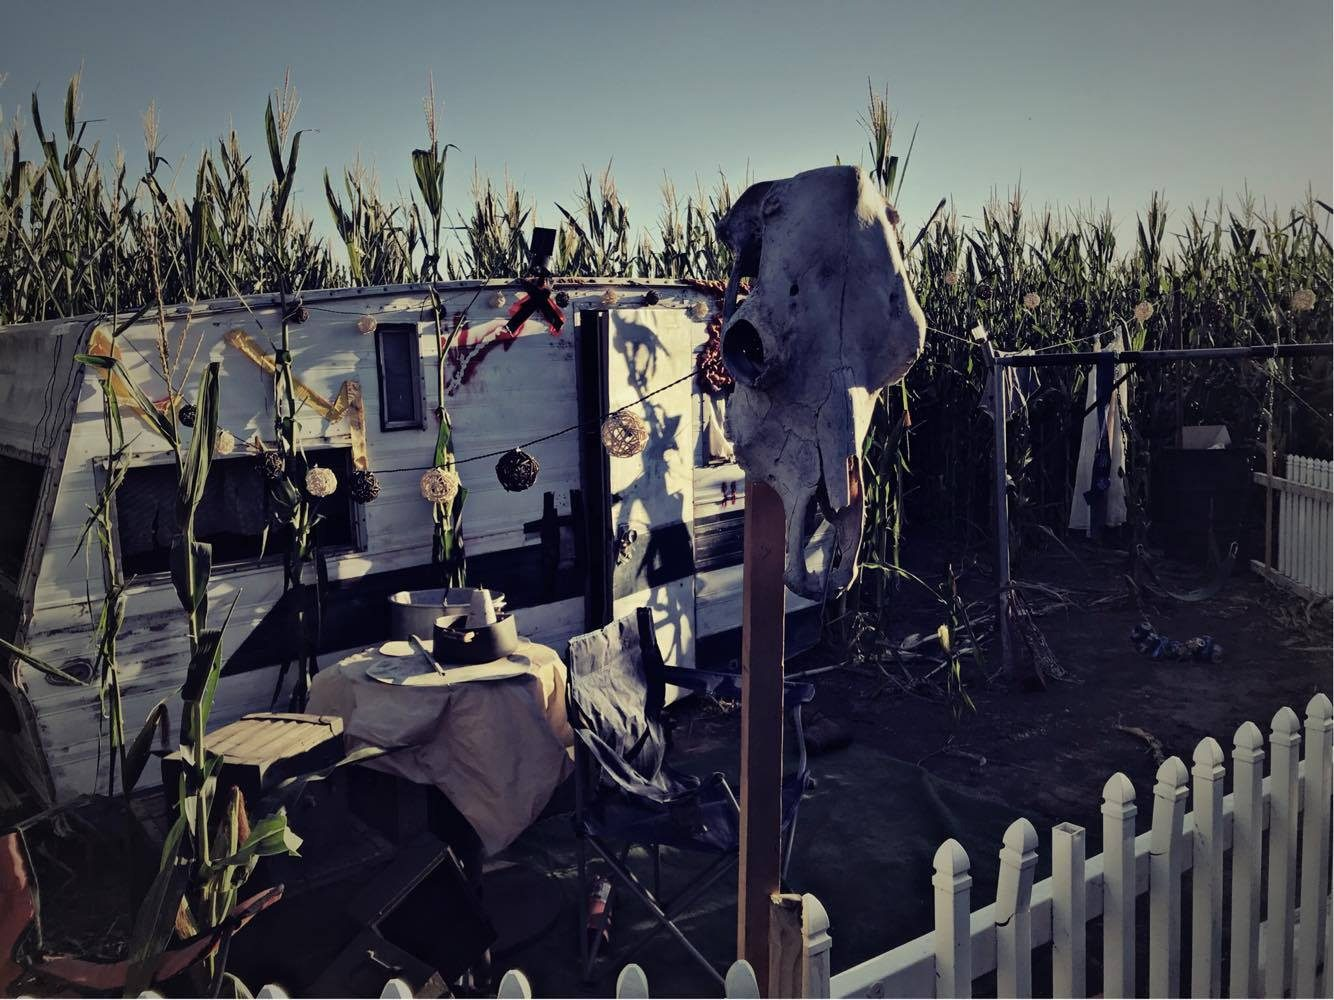 An+eerie+trailer+looms+in+the+corn+maze.+Peek+inside+to+see+what+awaits.%0A%0APhoto+courtesy+of+Country+Pumpkins